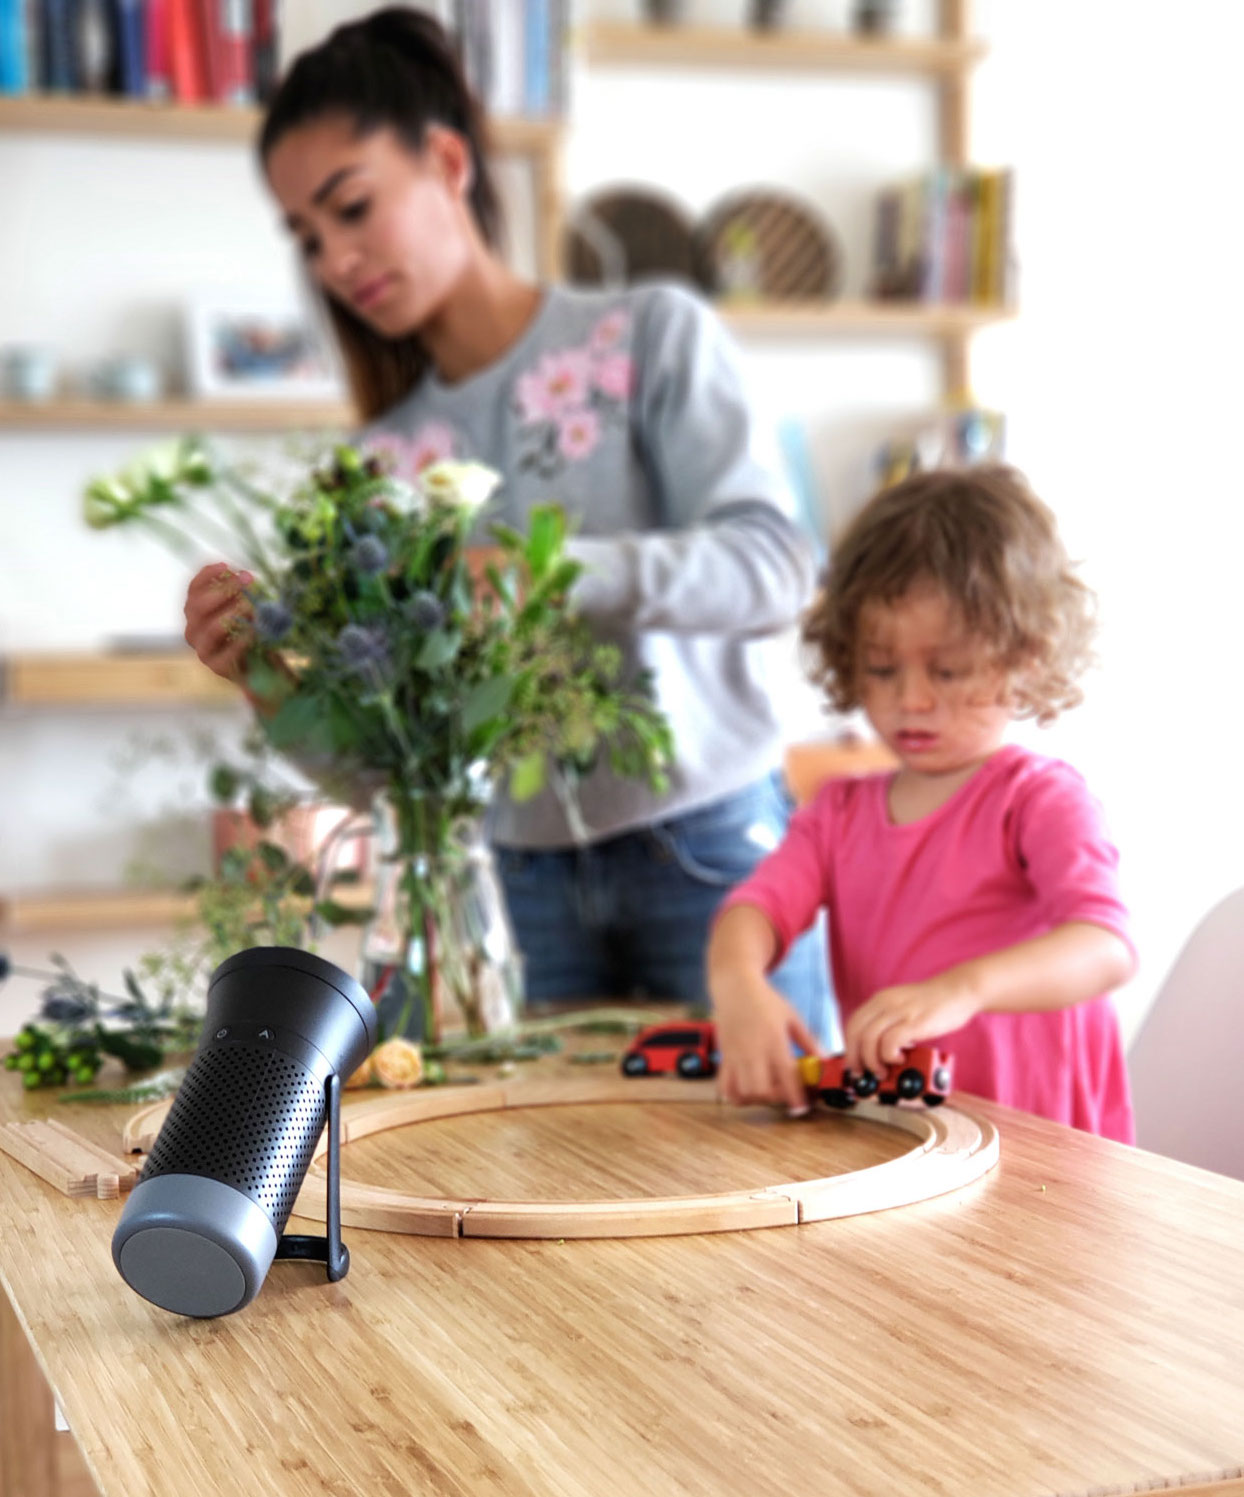 wynd essential air purifier review - wynd essential air purifier with kids stock